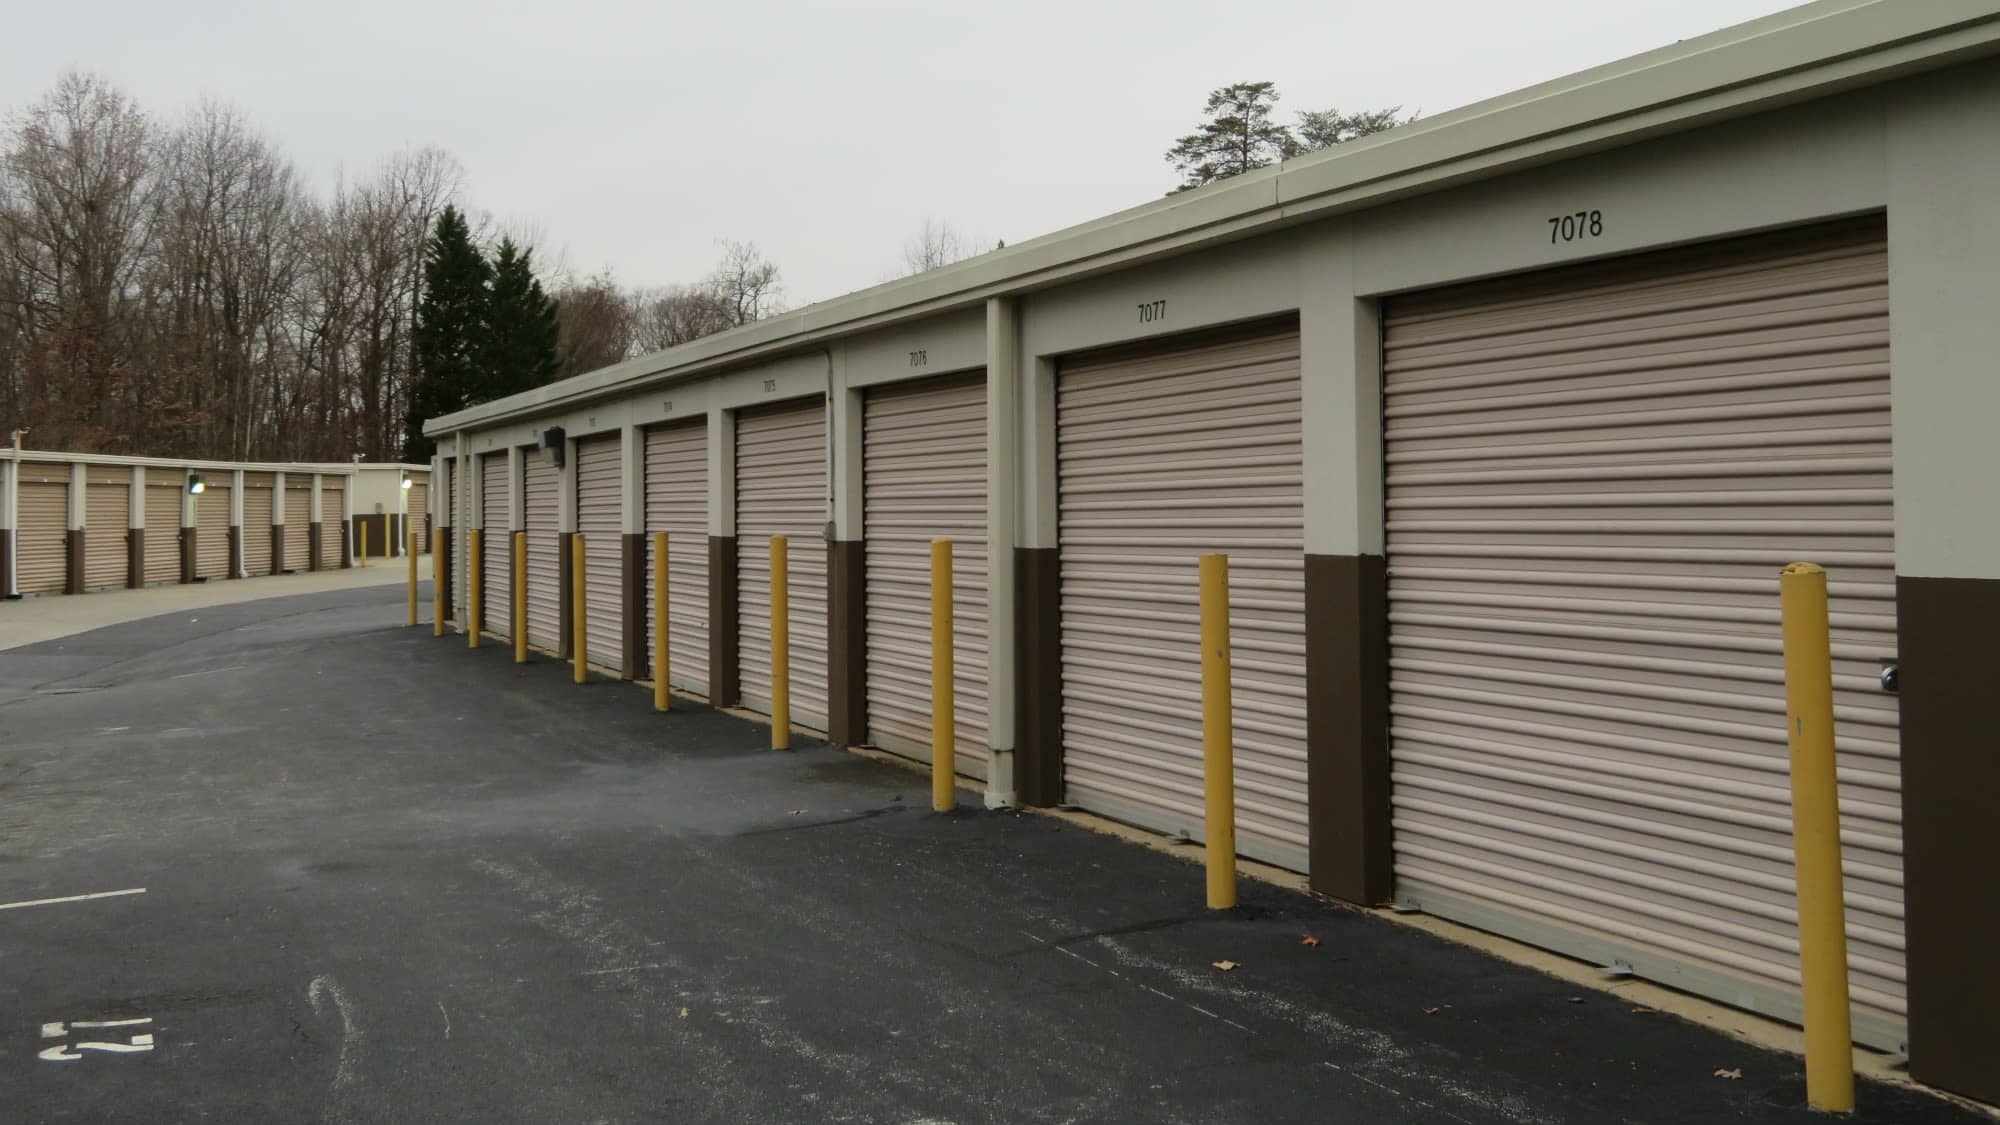 Ground-level units at Seabrook Self Storage in Seabrook, Maryland